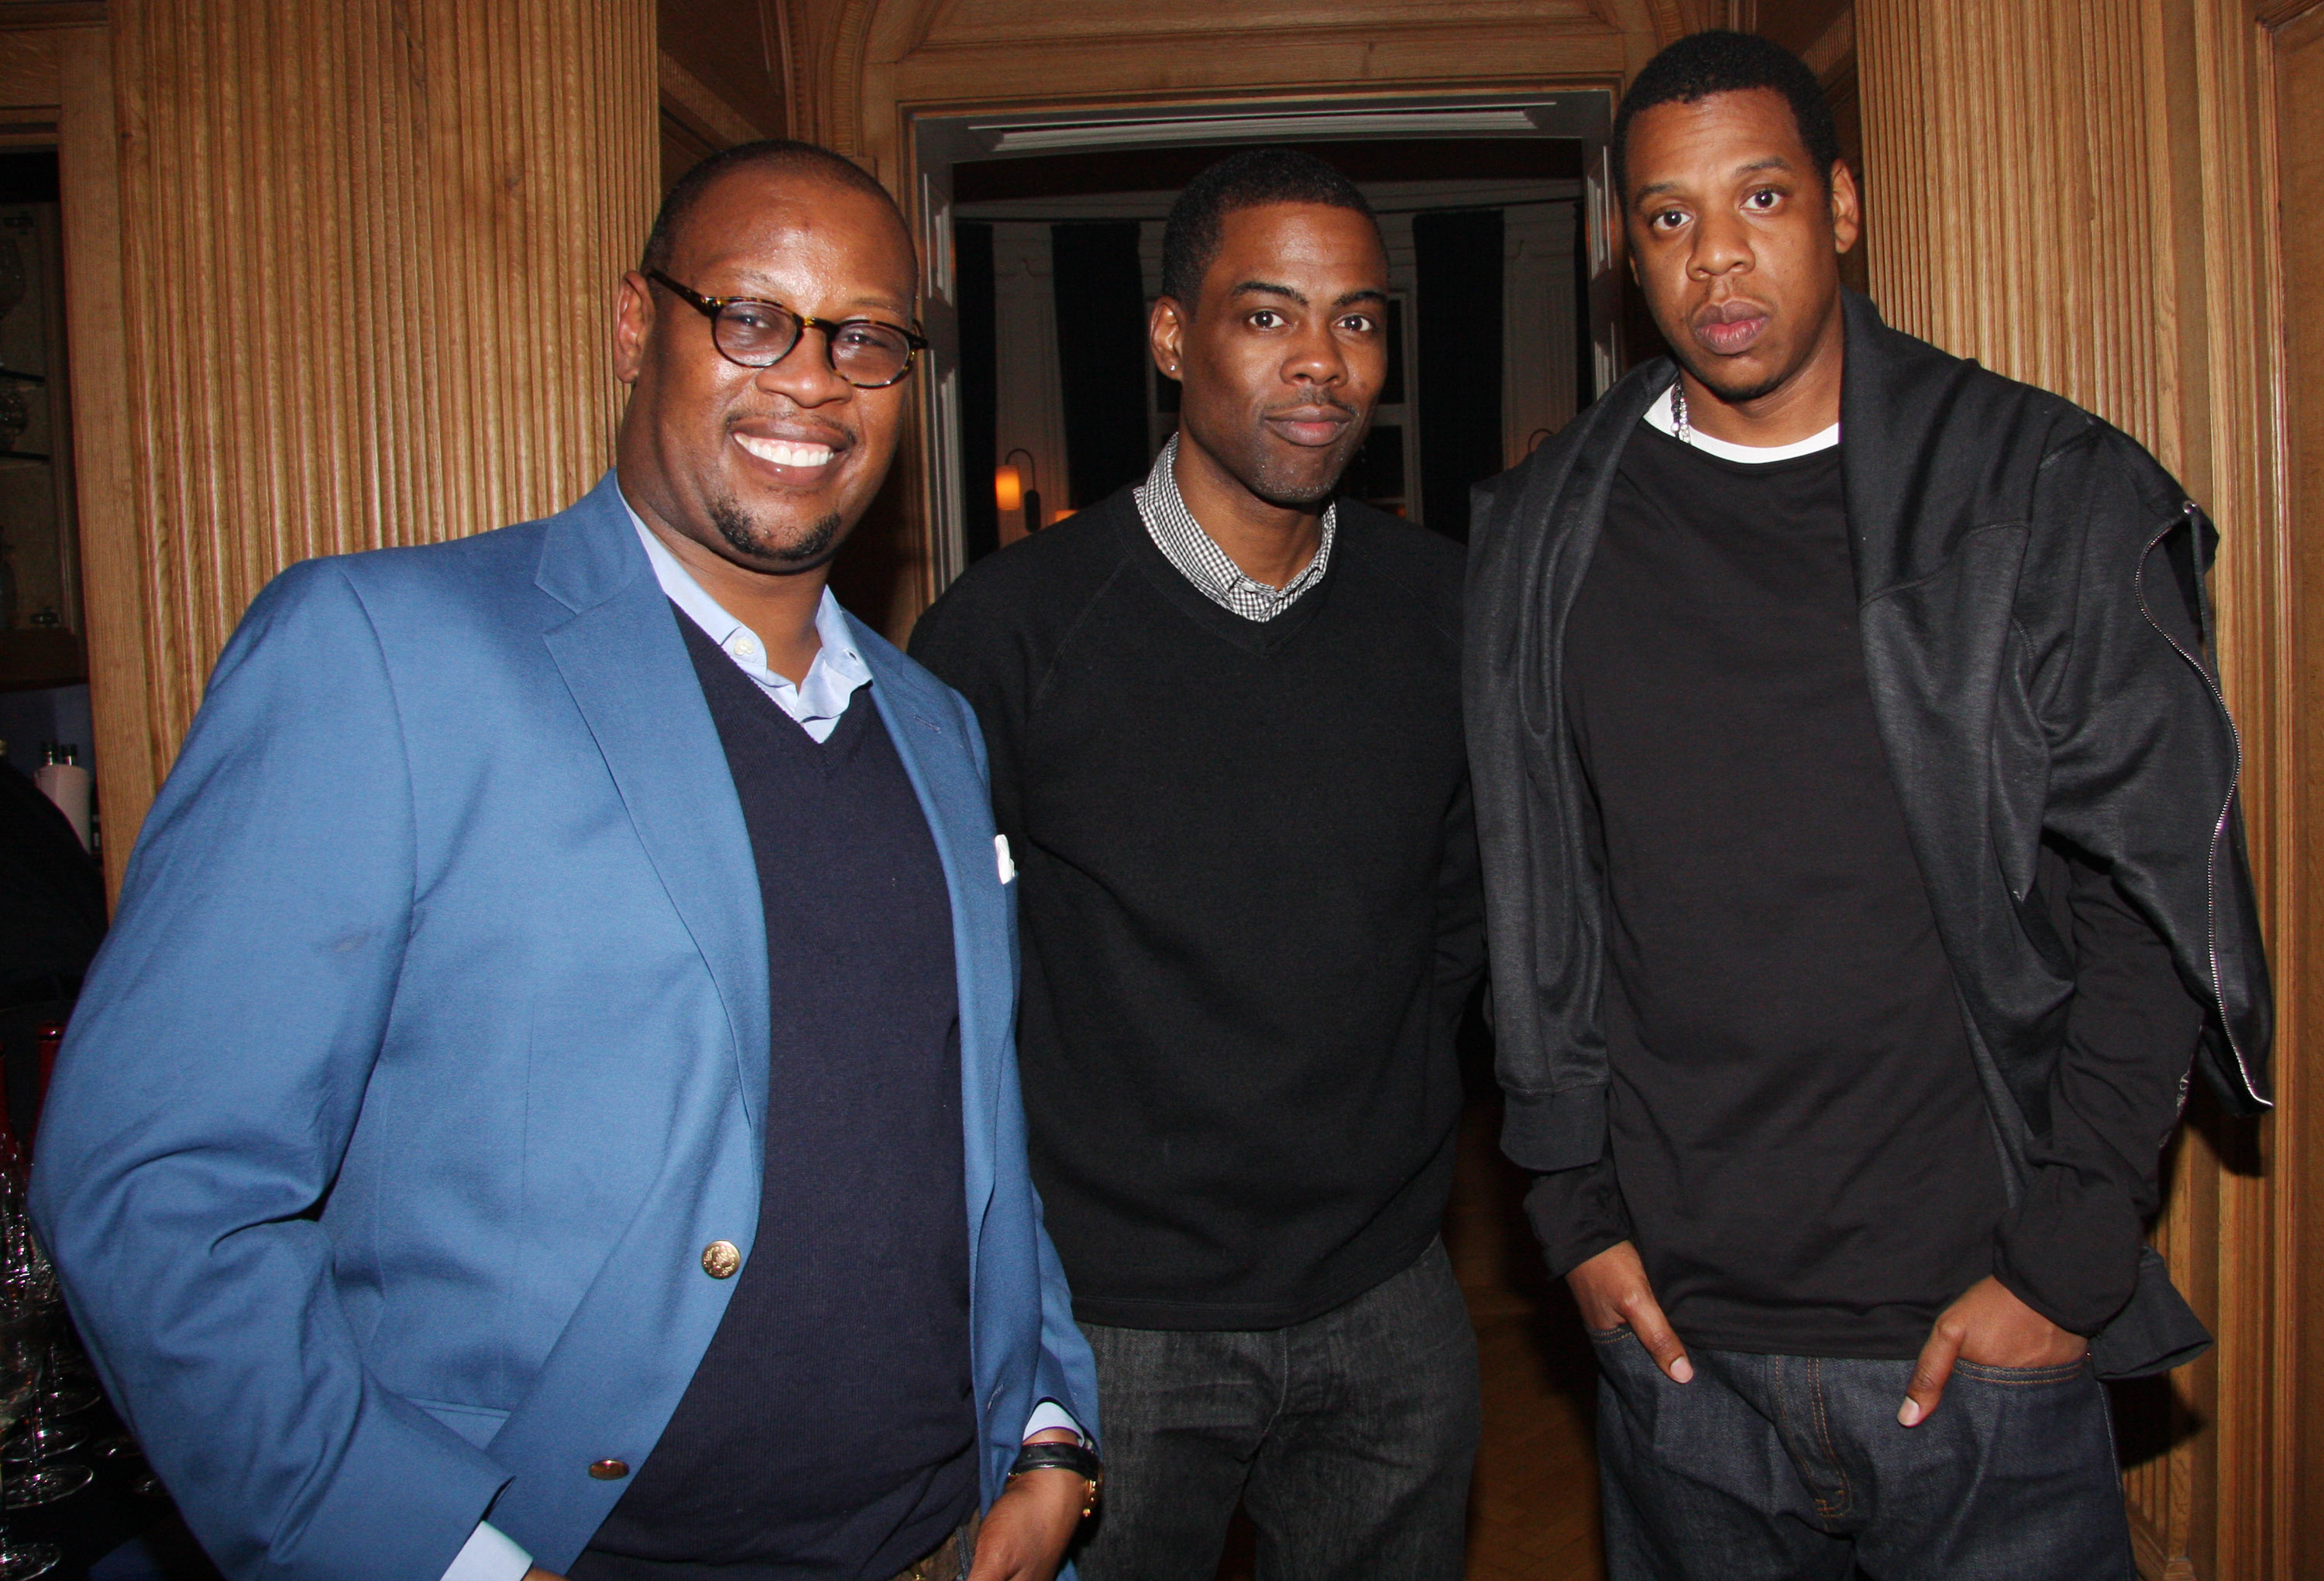 (L-R) Andre Harrell, Chris Rock and  Jay-Z attend Andre Harrell's celebration dinner hosted by Lyor Cohen at a Private Residence on January 26, 2009 in New York City.